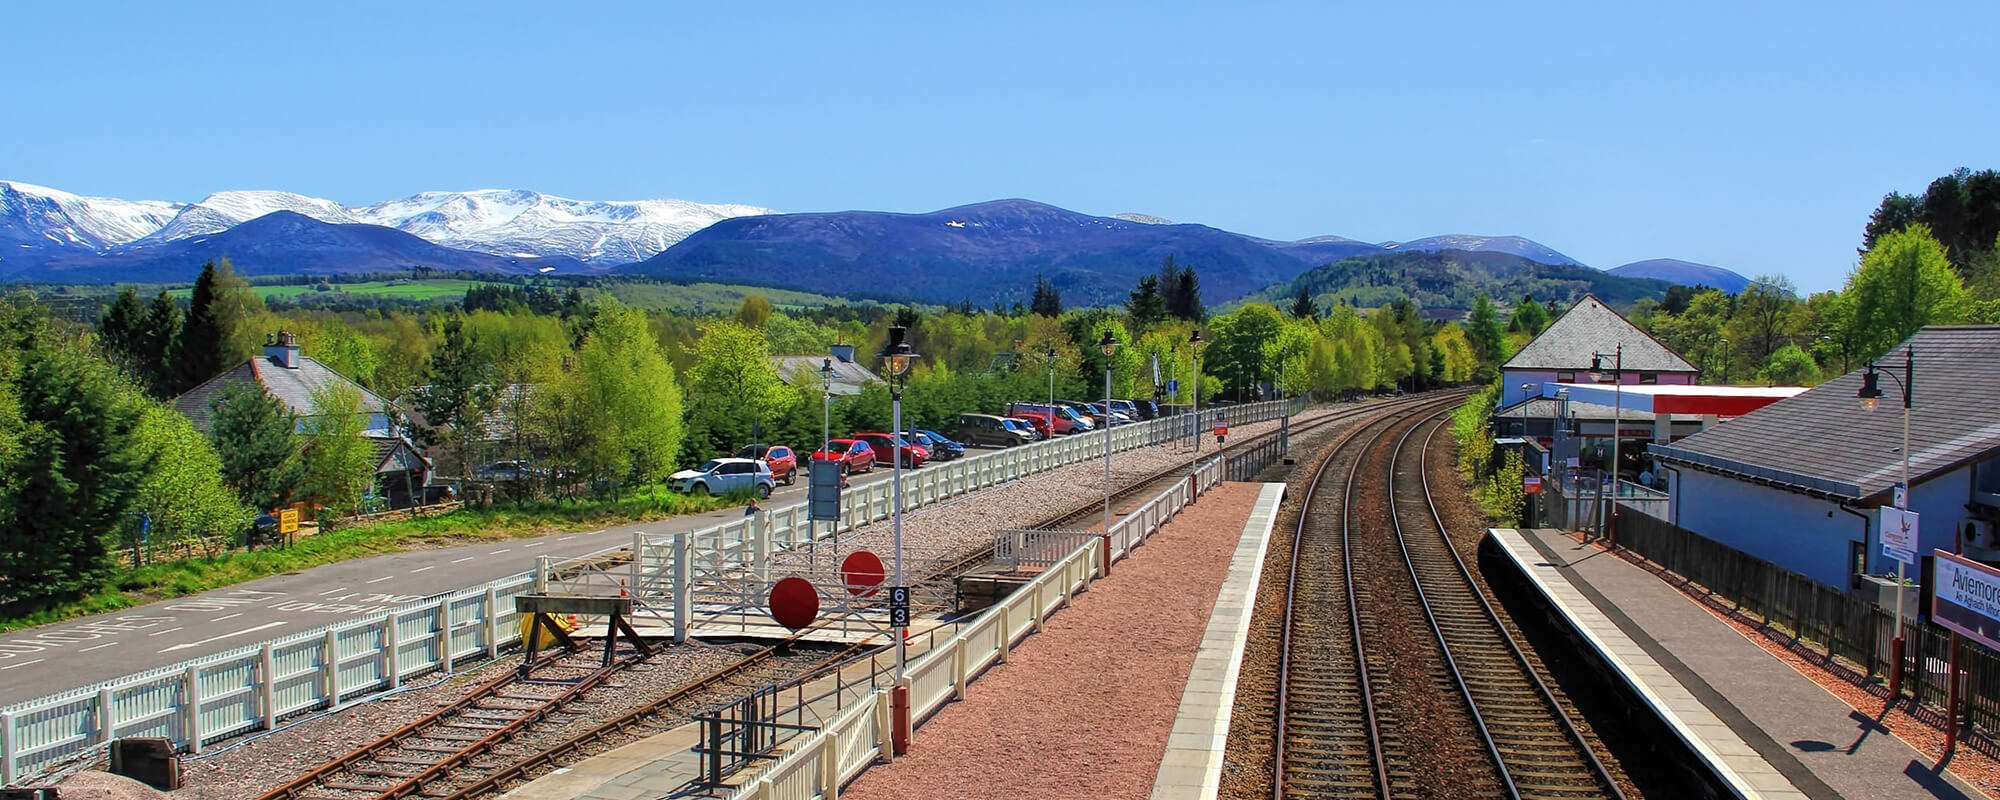 Aviemore Train Station